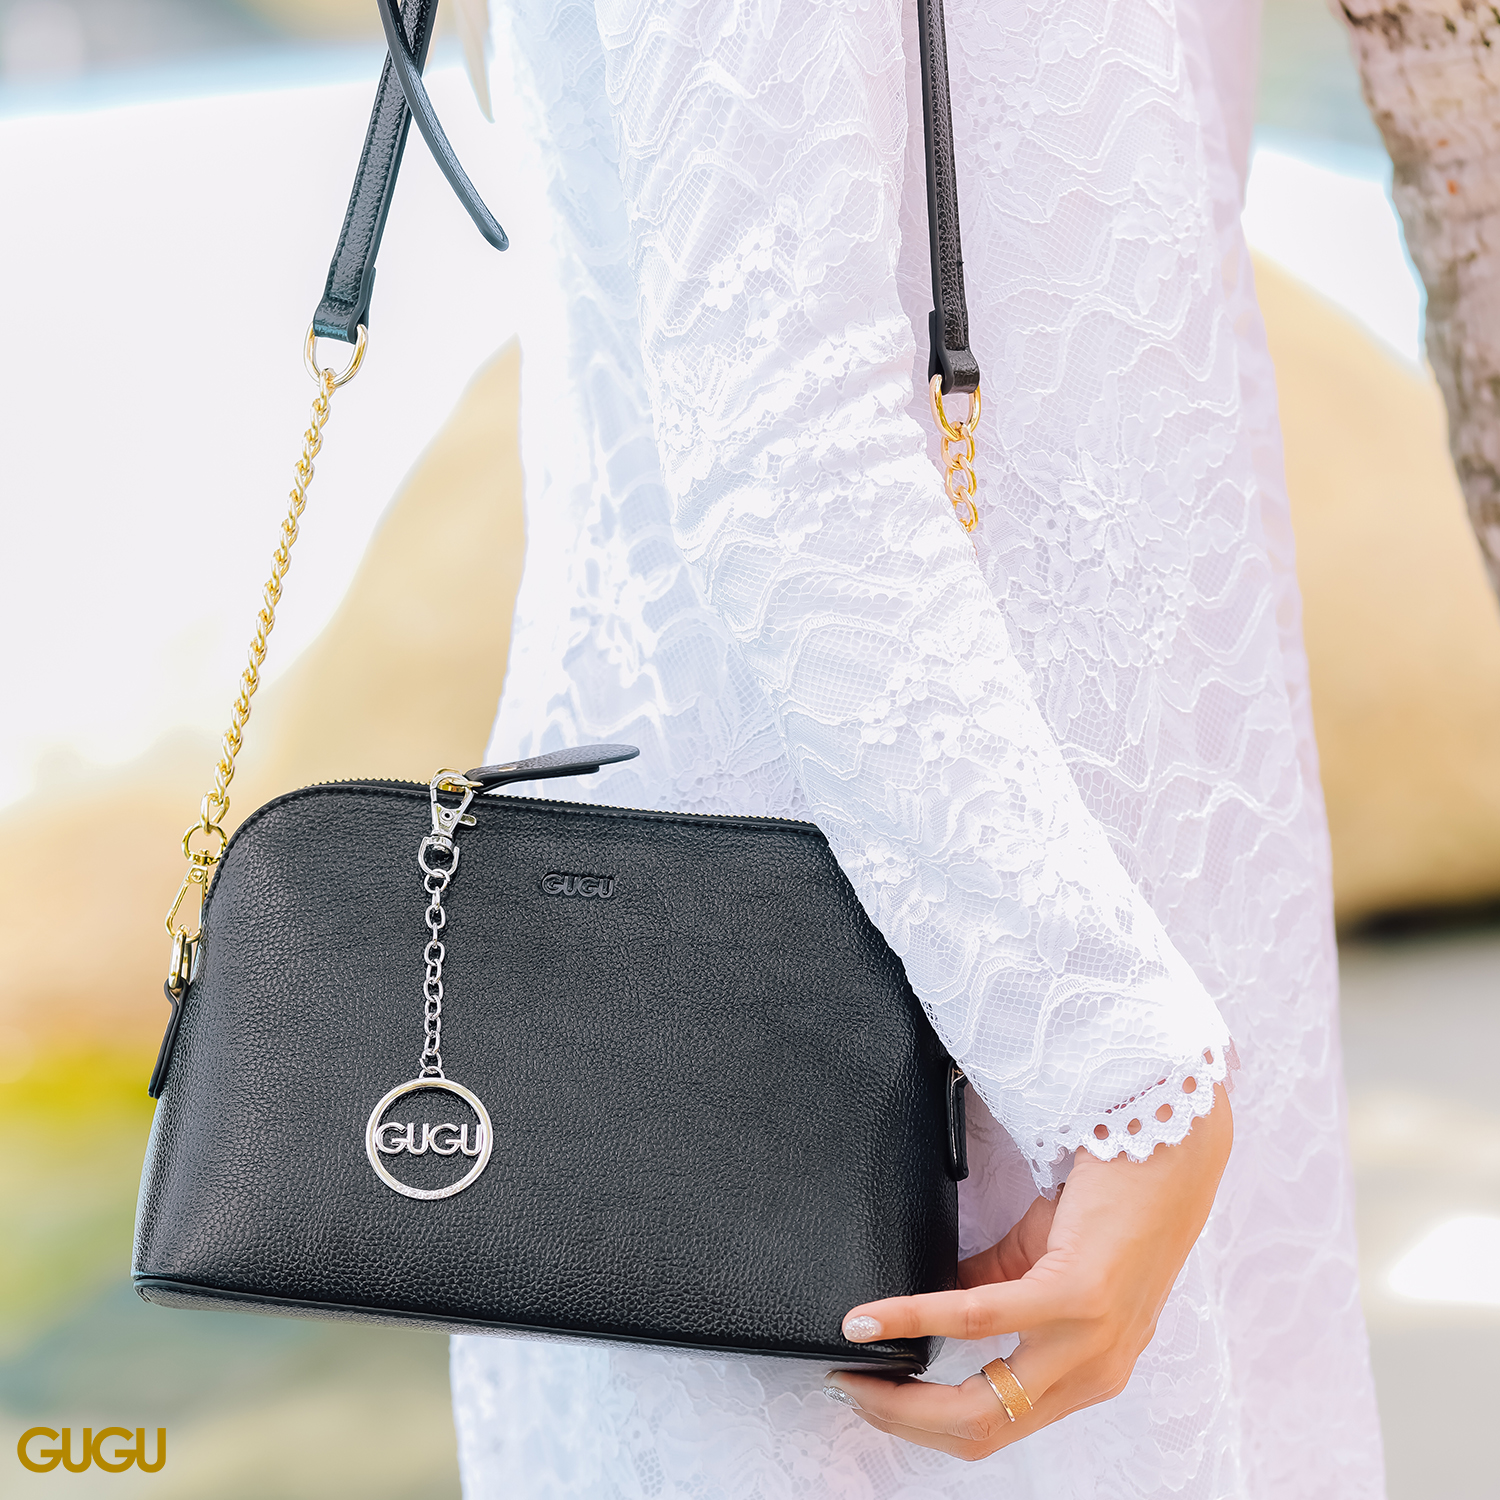 Gugu Closet | Featured Collections - Sling